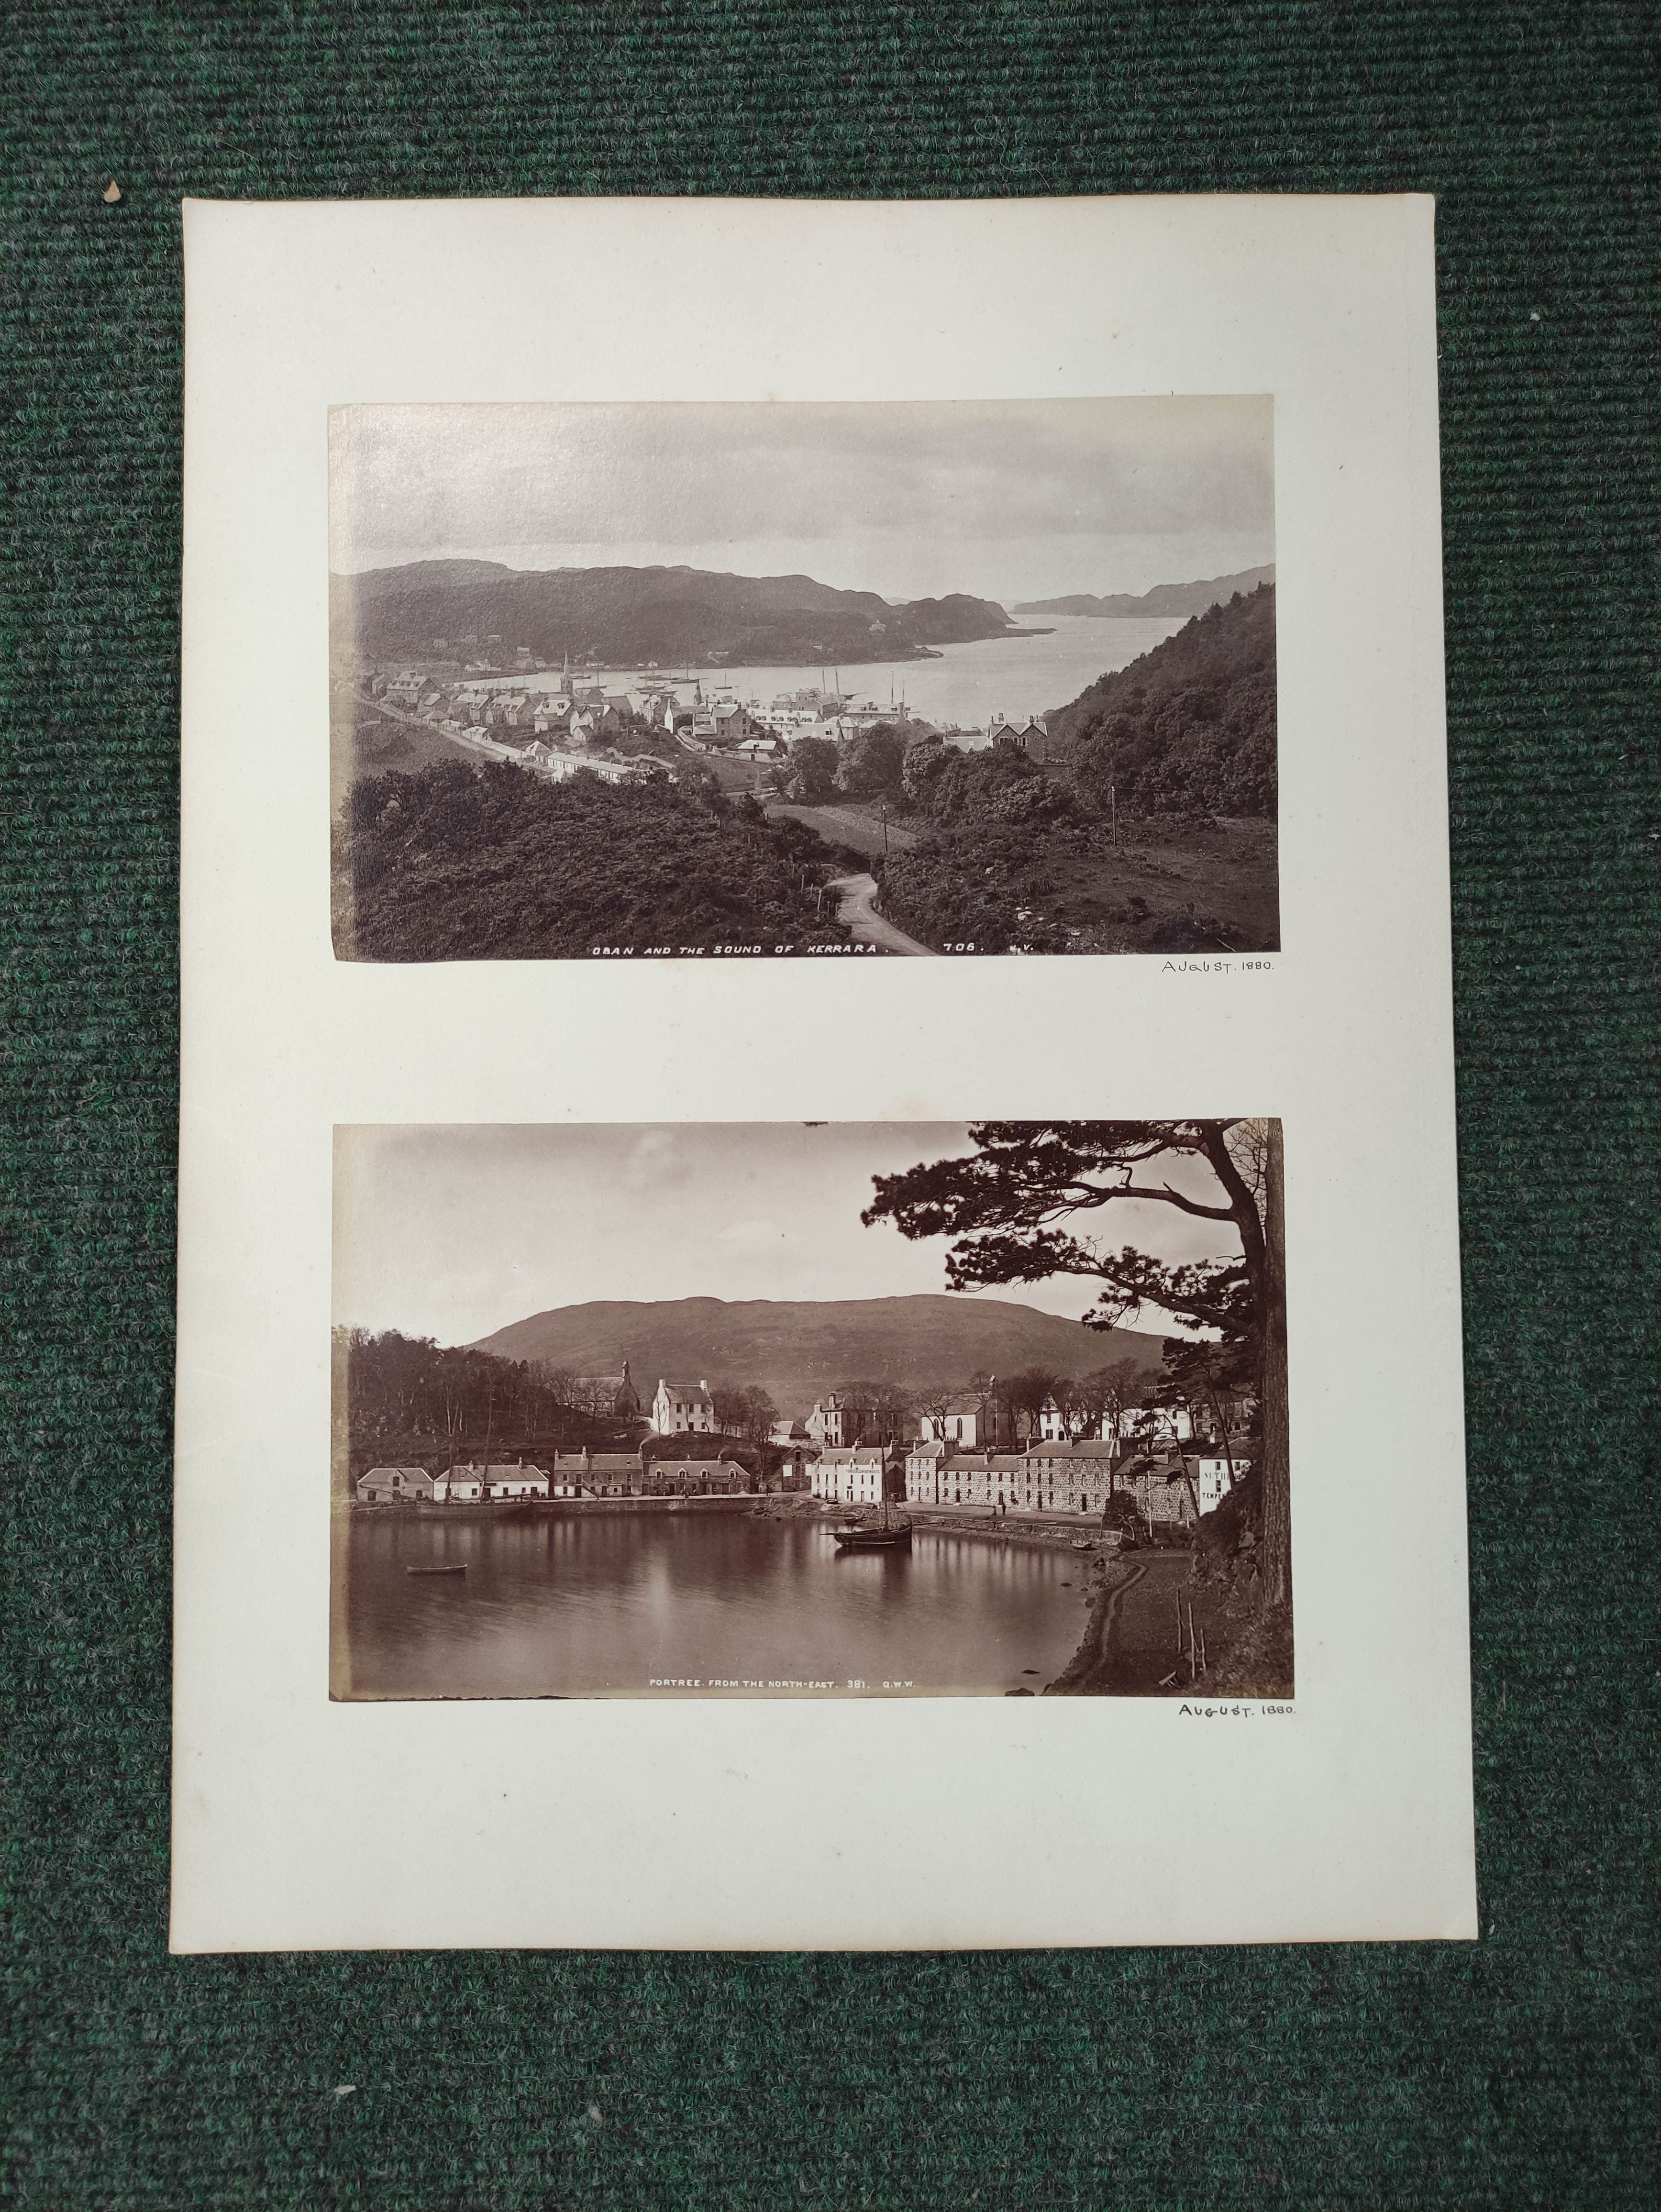 CONNELL ROBERT.St. Kilda & the St. Kildians.Orig. blue cloth. 1887; also one or two other items - Image 9 of 9